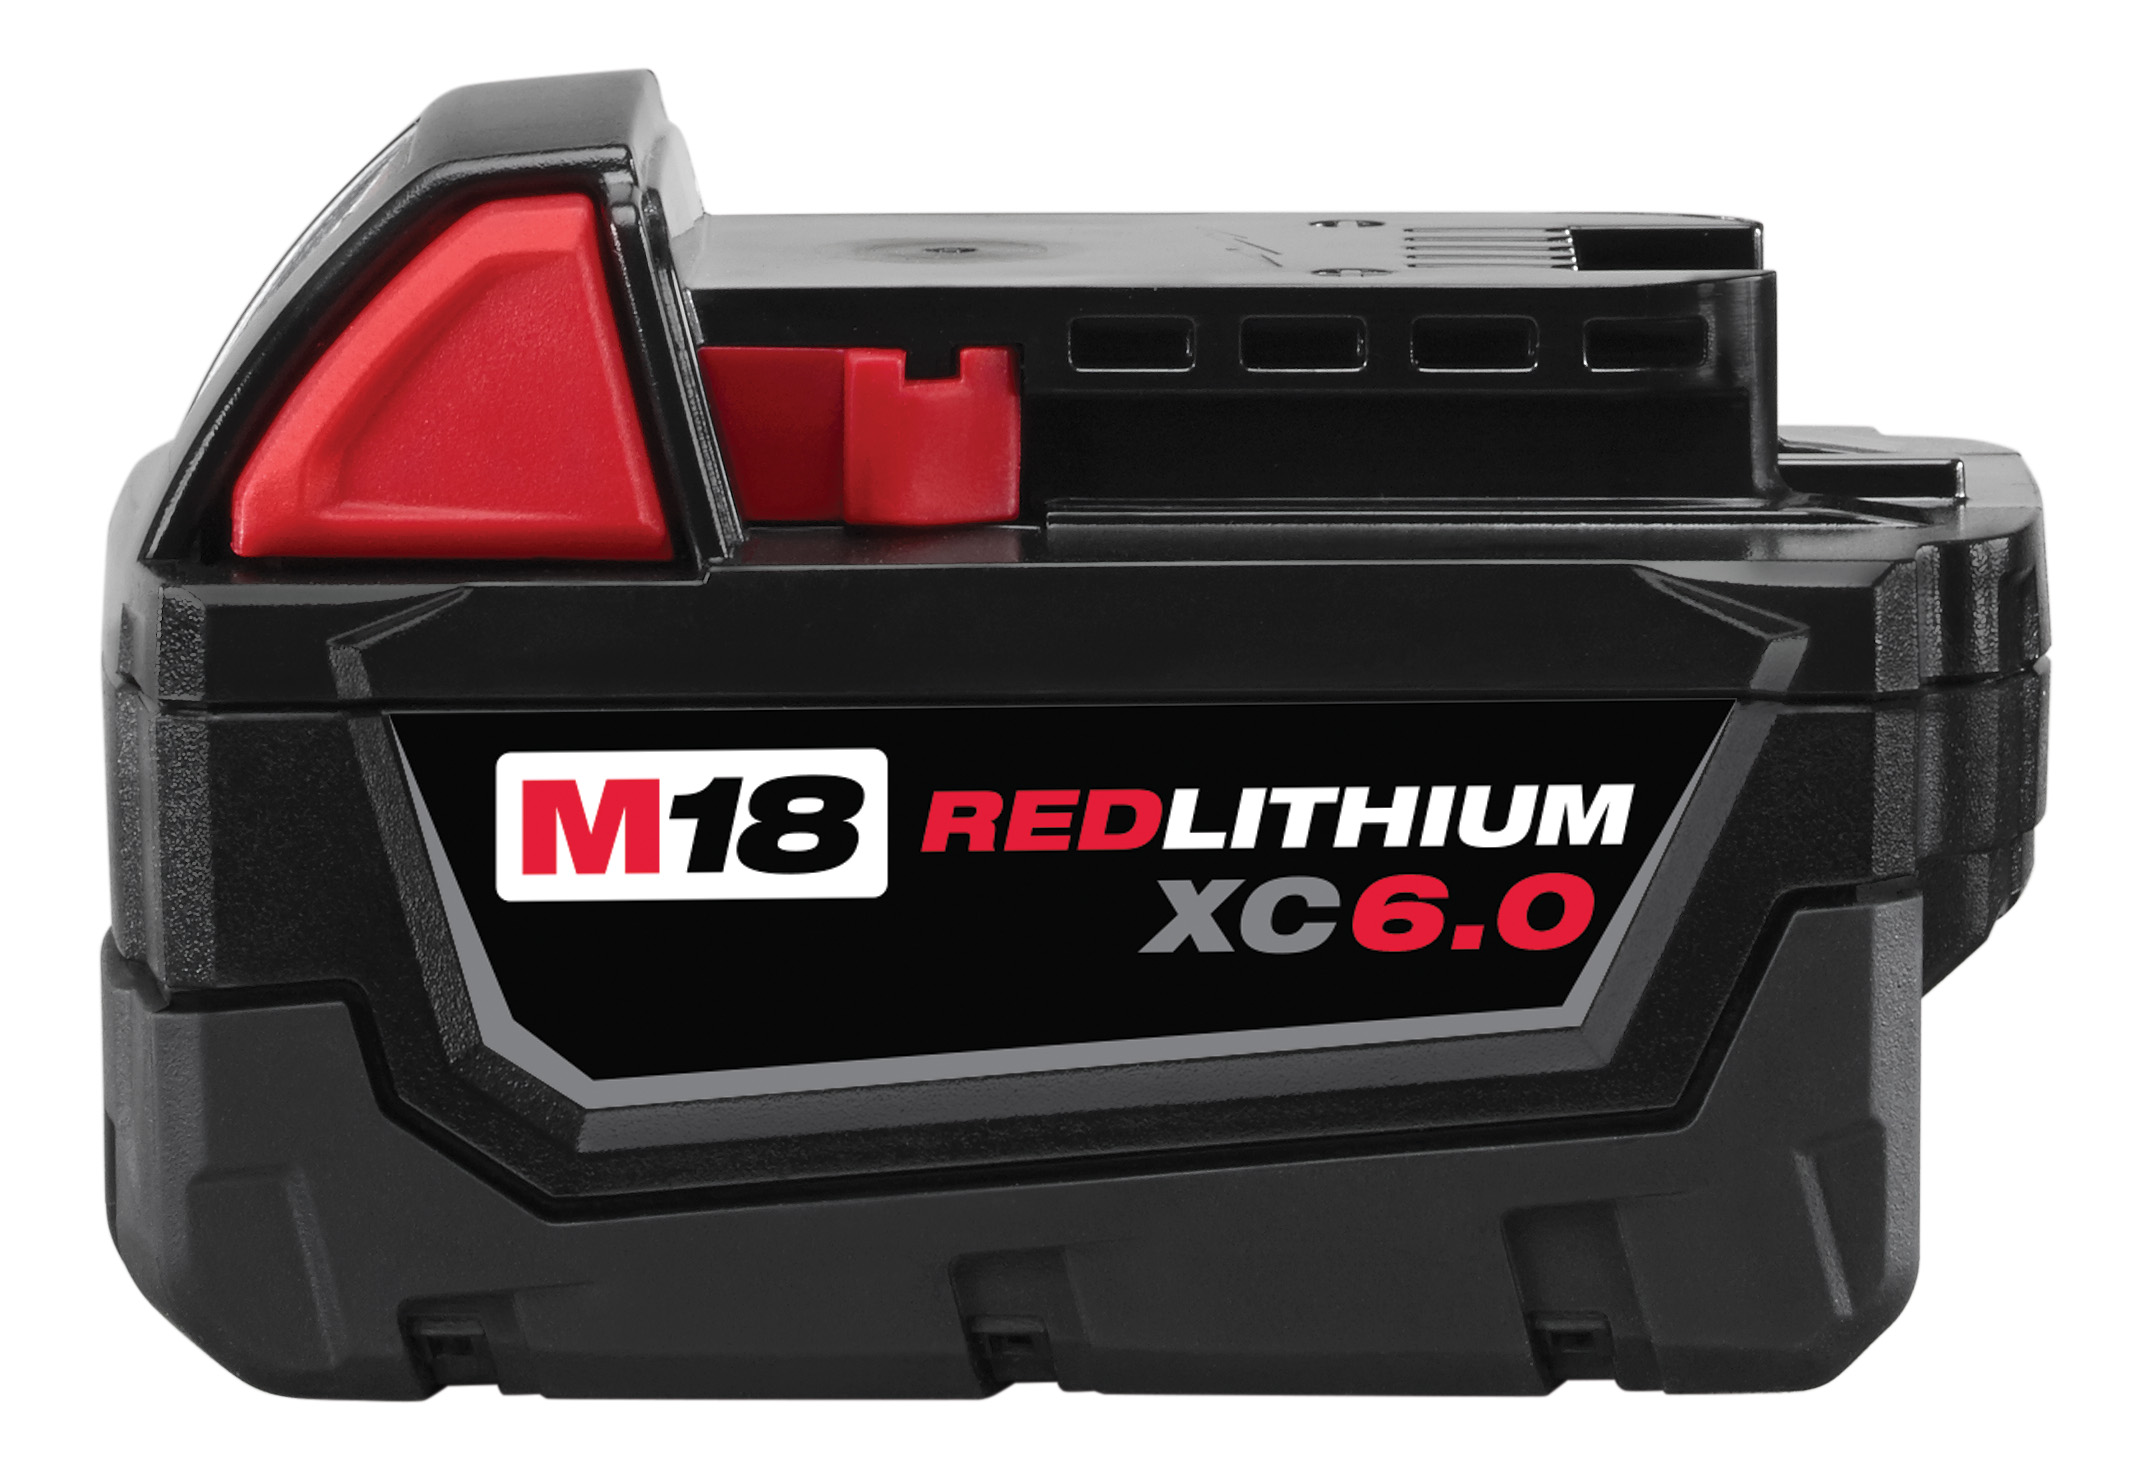 Milwaukee® M18™ REDLITHIUM™ 48-11-1860 Slide-On Battery Pack, 6 Ah Lithium-Ion Battery, 18 VDC Charge, For Use With Milwaukee® M18™ 18 V Cordless Tools